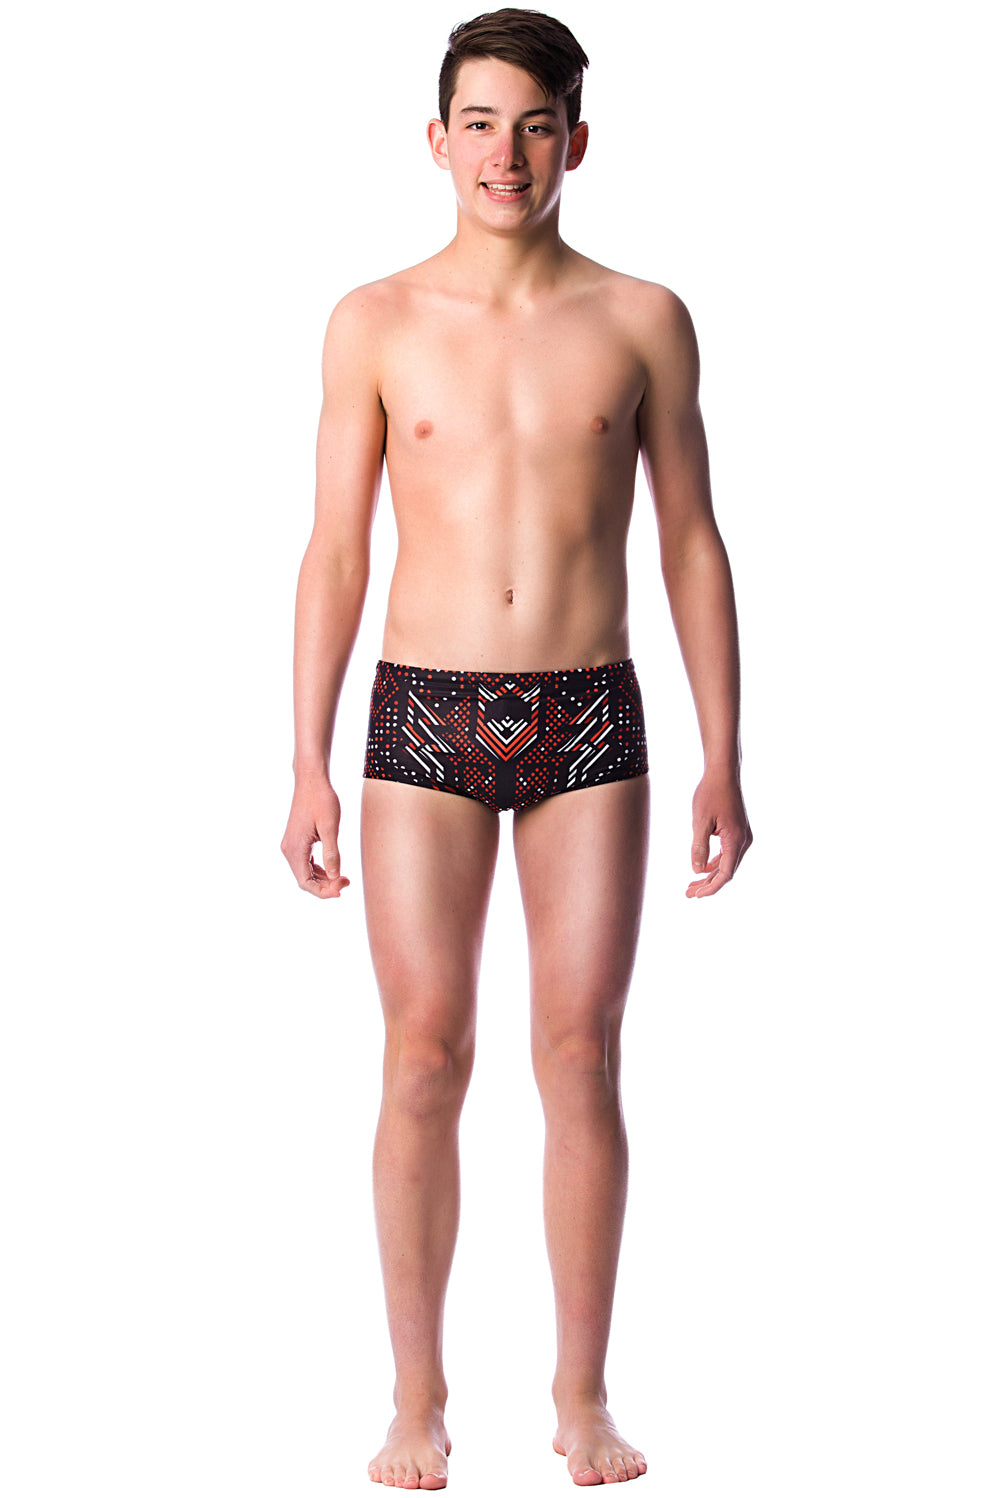 e70ad45048 Blaze Boys Trunks - Shop Zealous Training Swimwear